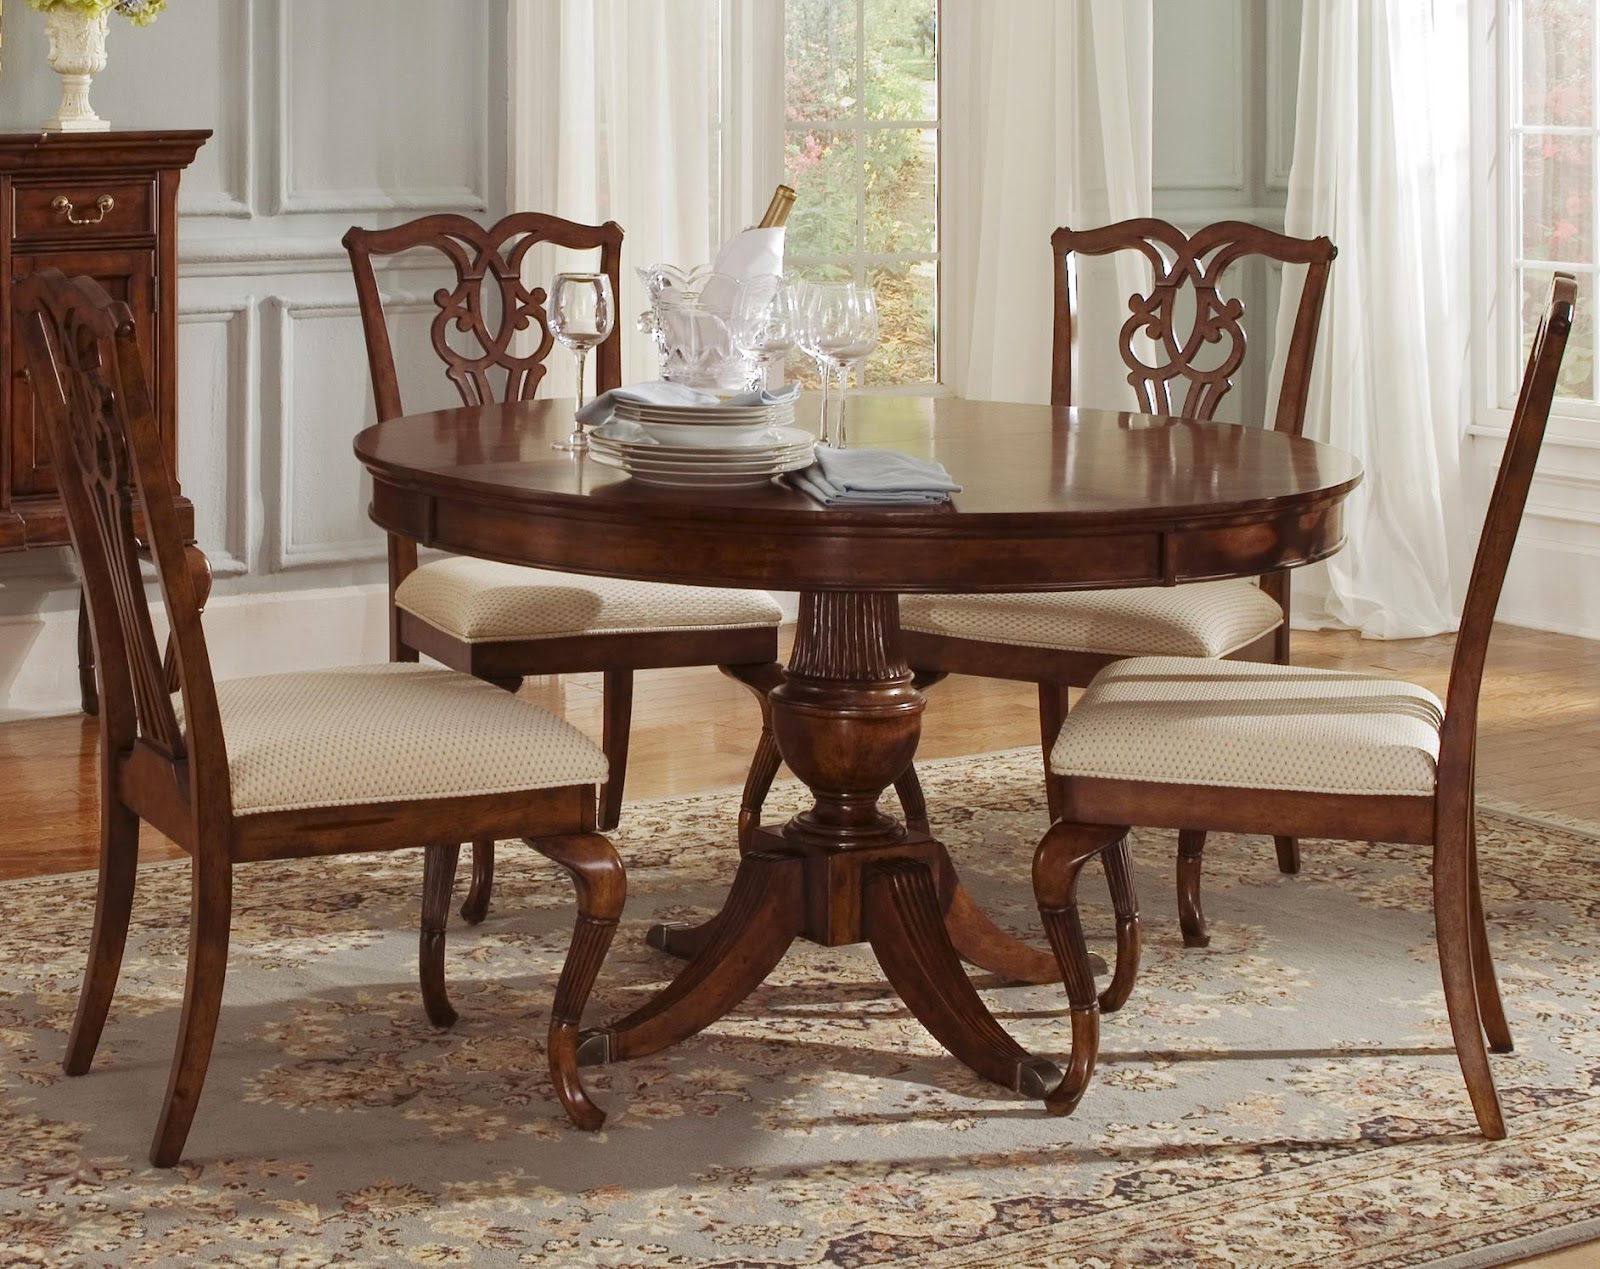 Knoxville wholesale furniture the ansley manor collection for Dining room tables knoxville tn